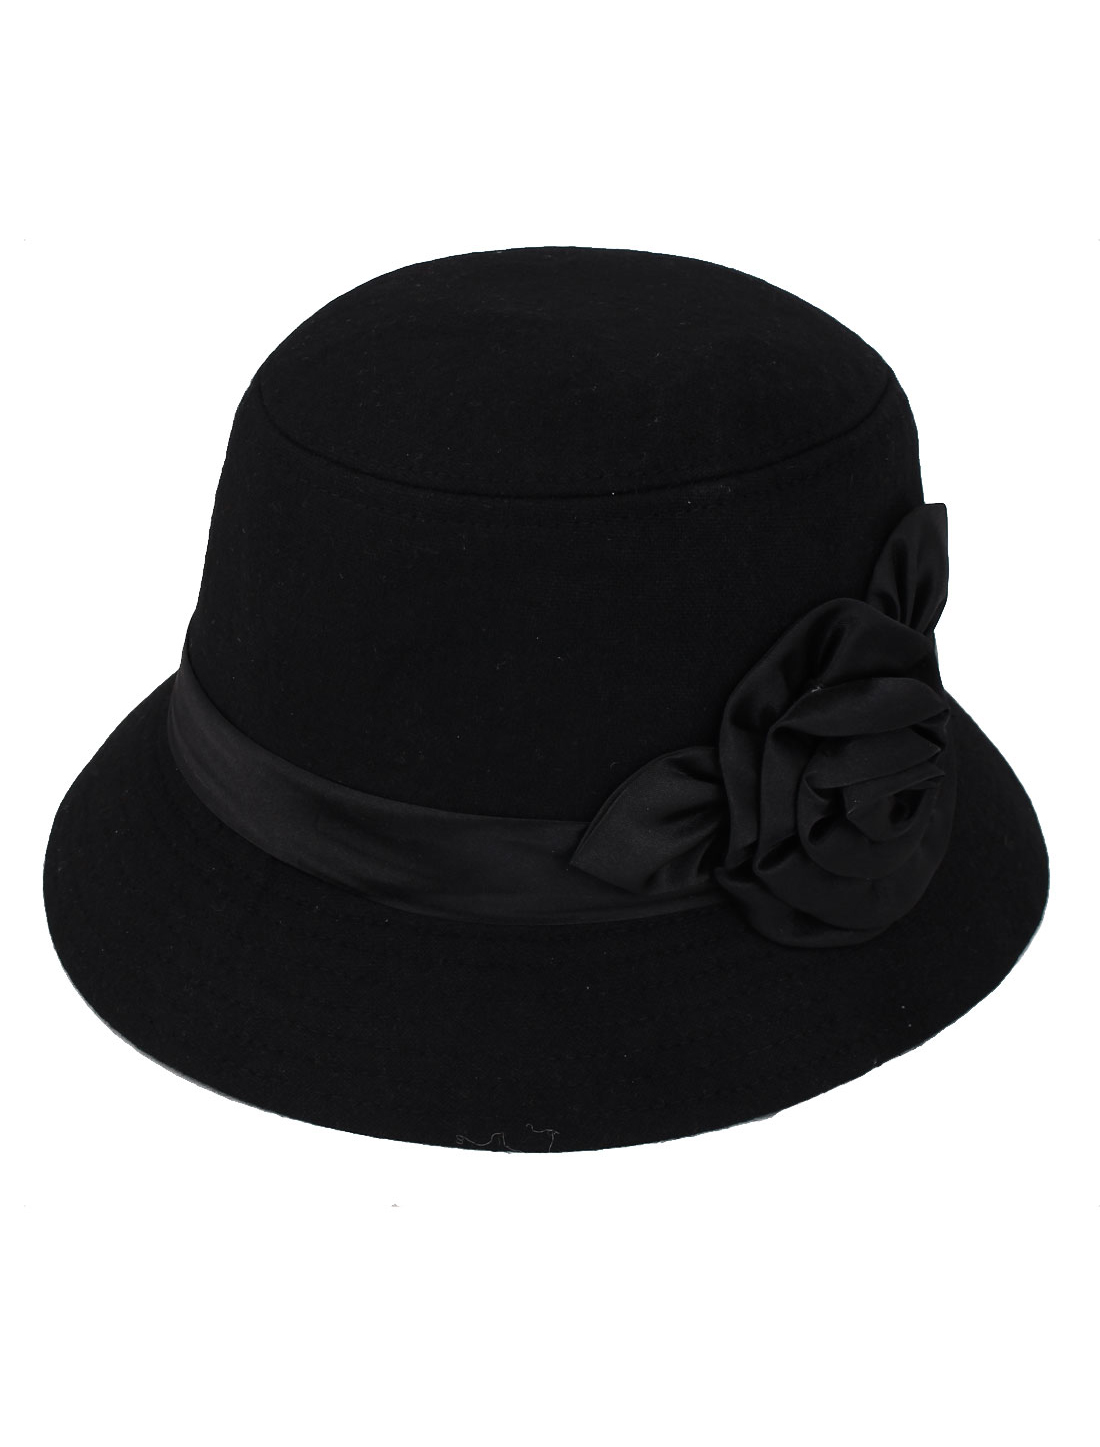 Woman Lady Flower Decor Travel Fedora Casual Hat Top Sun Cap Black